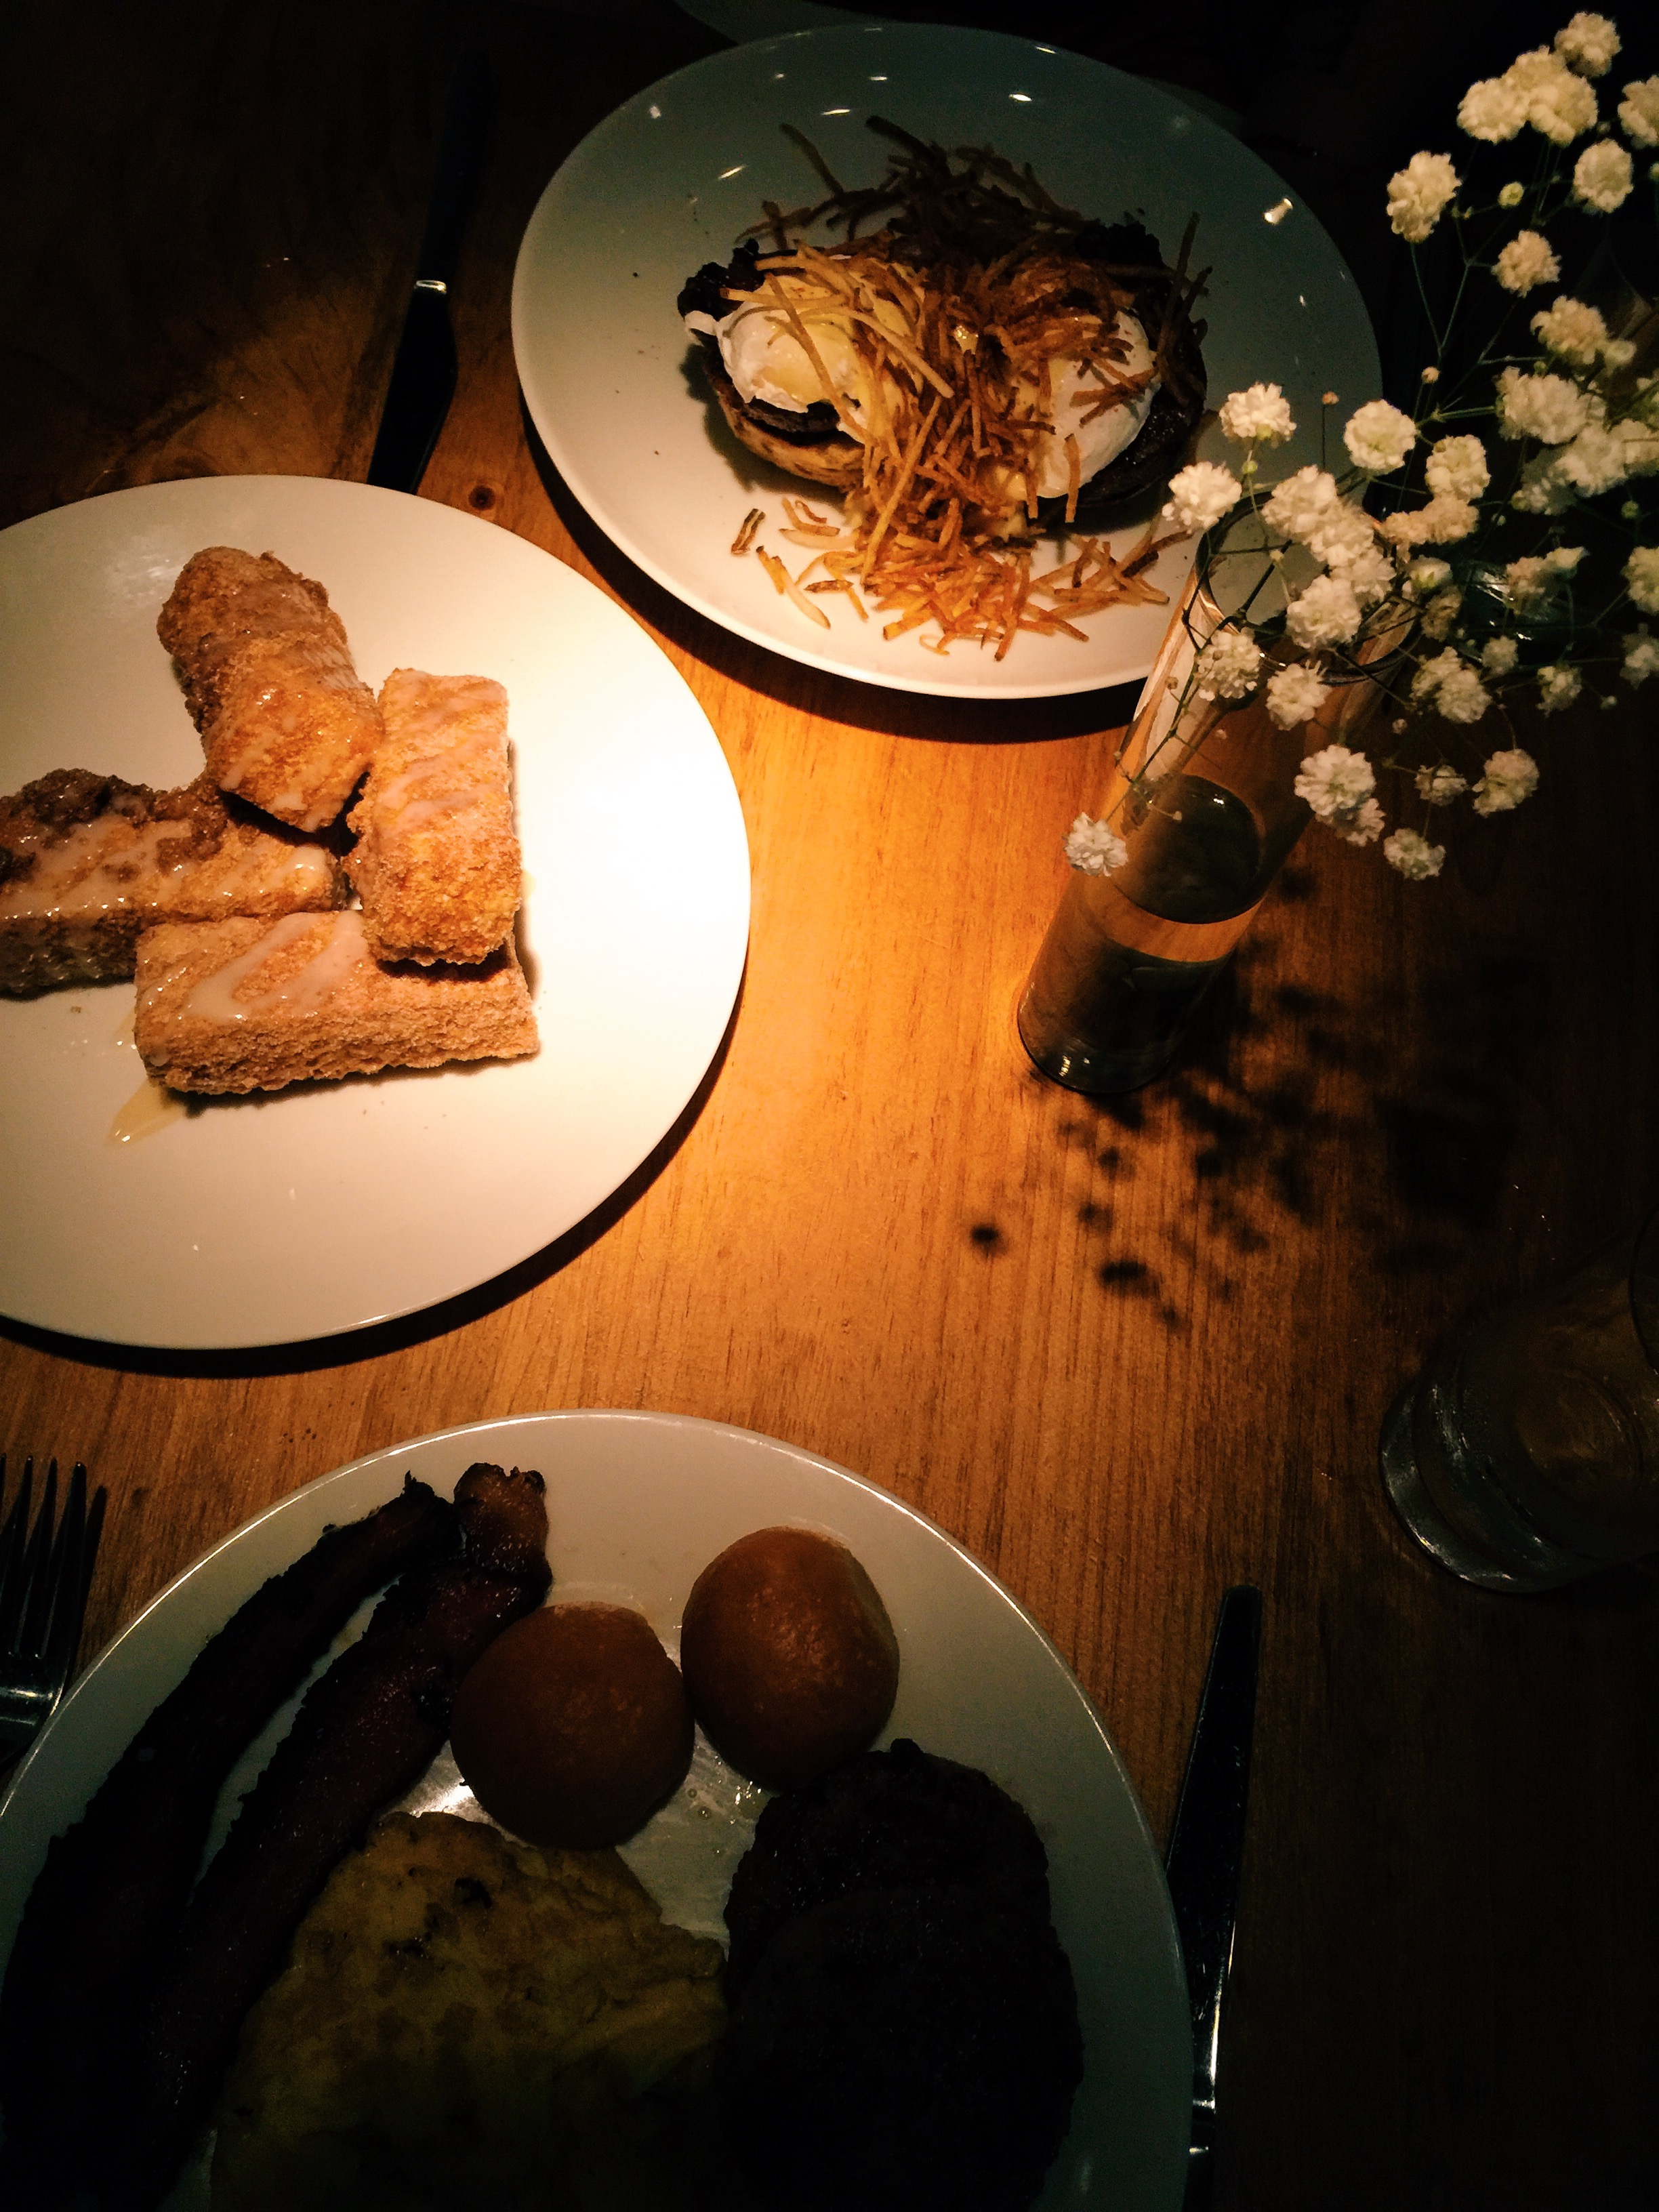 We're not sure if a dimly lit place was suitable for brunch. Dinner would be perfect though.